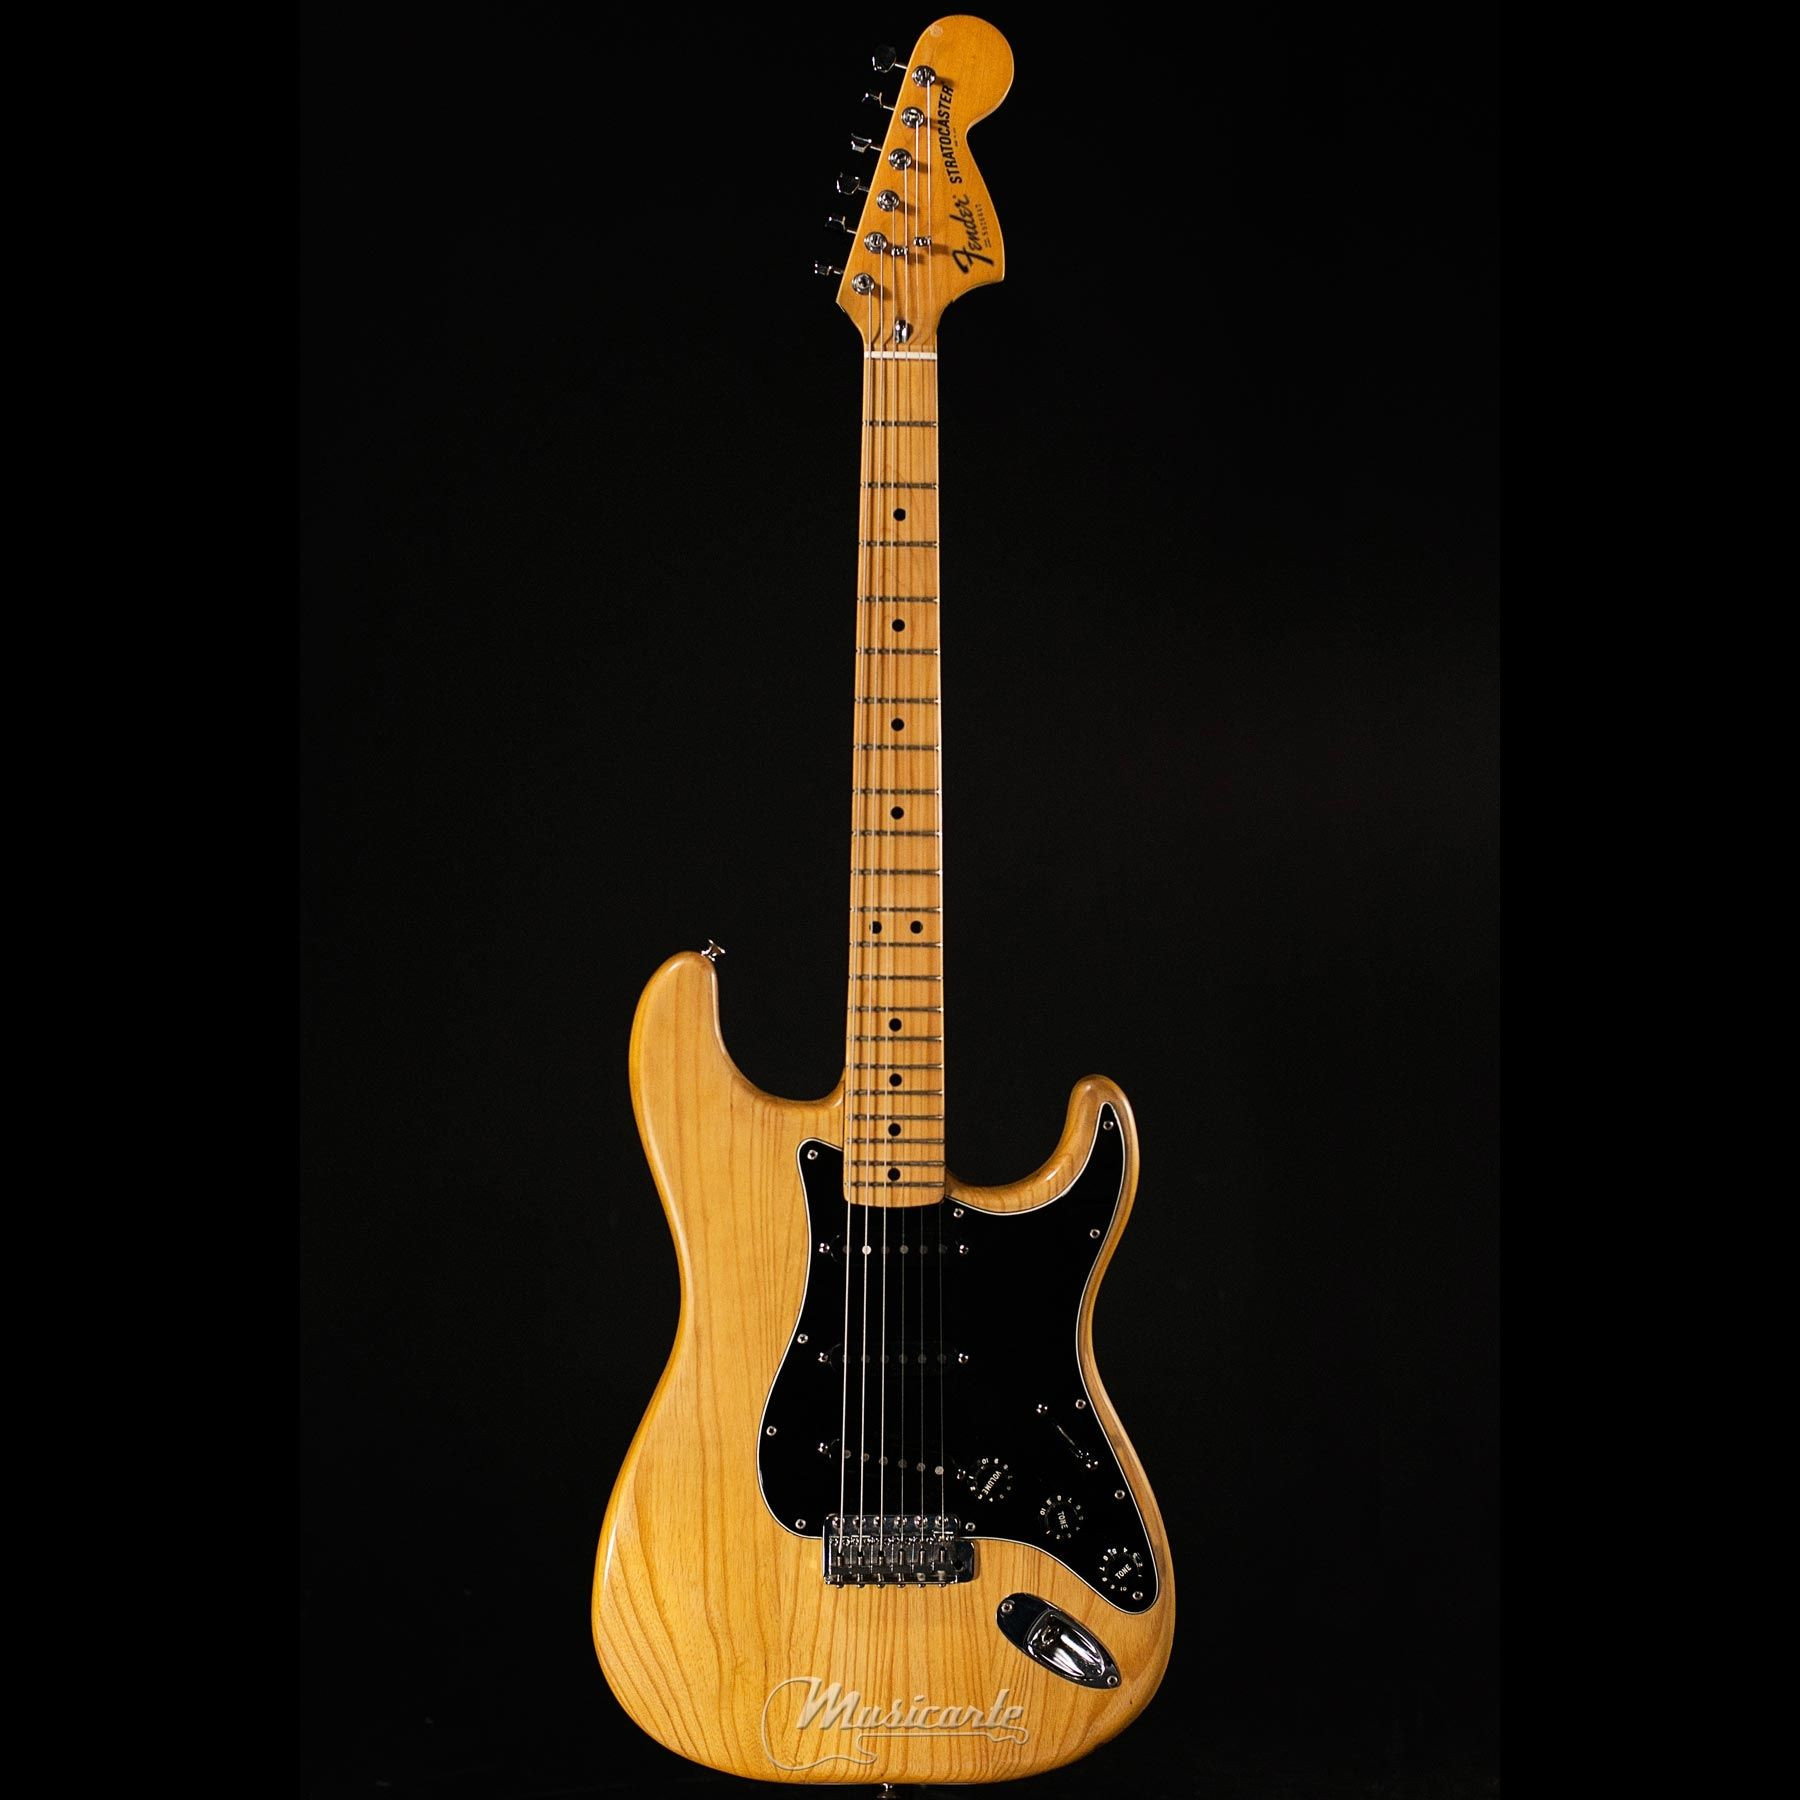 fender stratocaster 1979 natural maple neck musicarte strumenti musicali. Black Bedroom Furniture Sets. Home Design Ideas